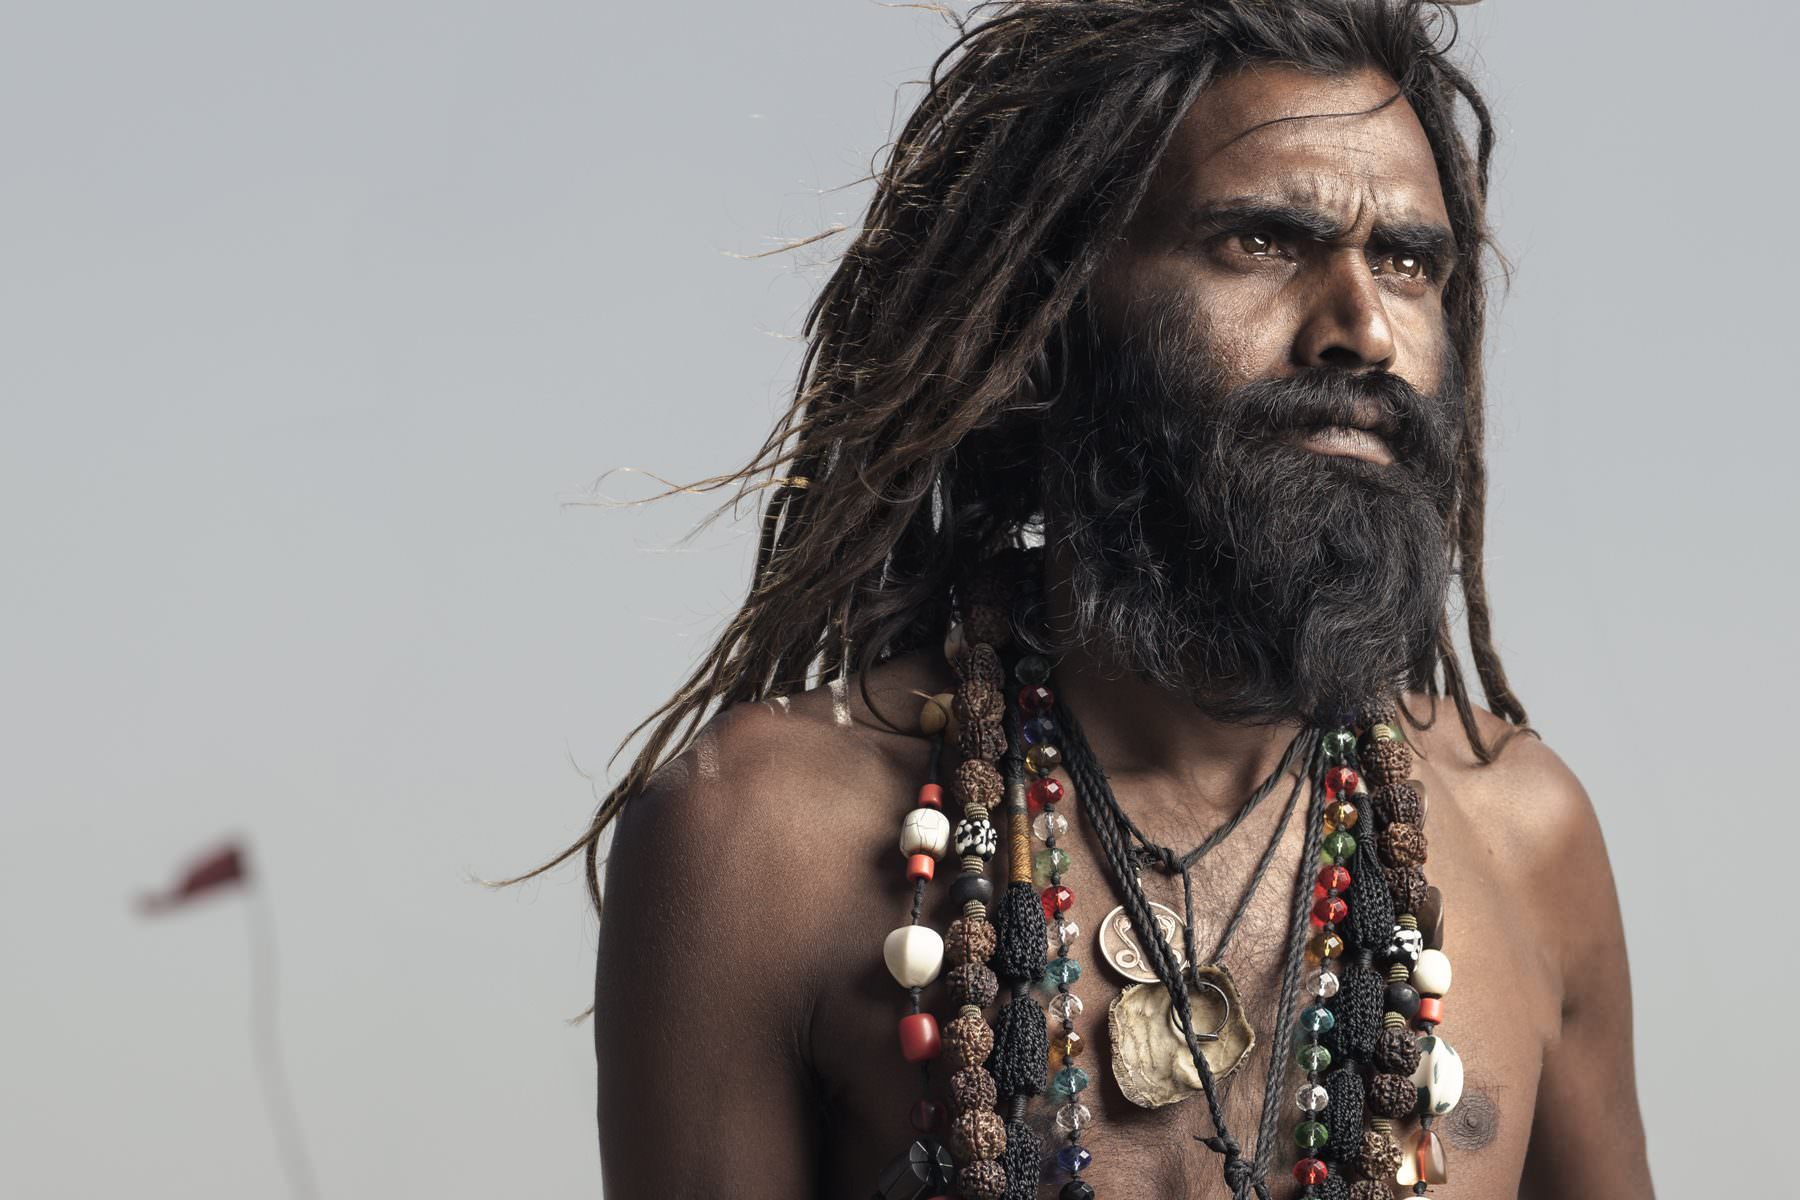 India, Varanasi, Aghori, Portrait, desert land